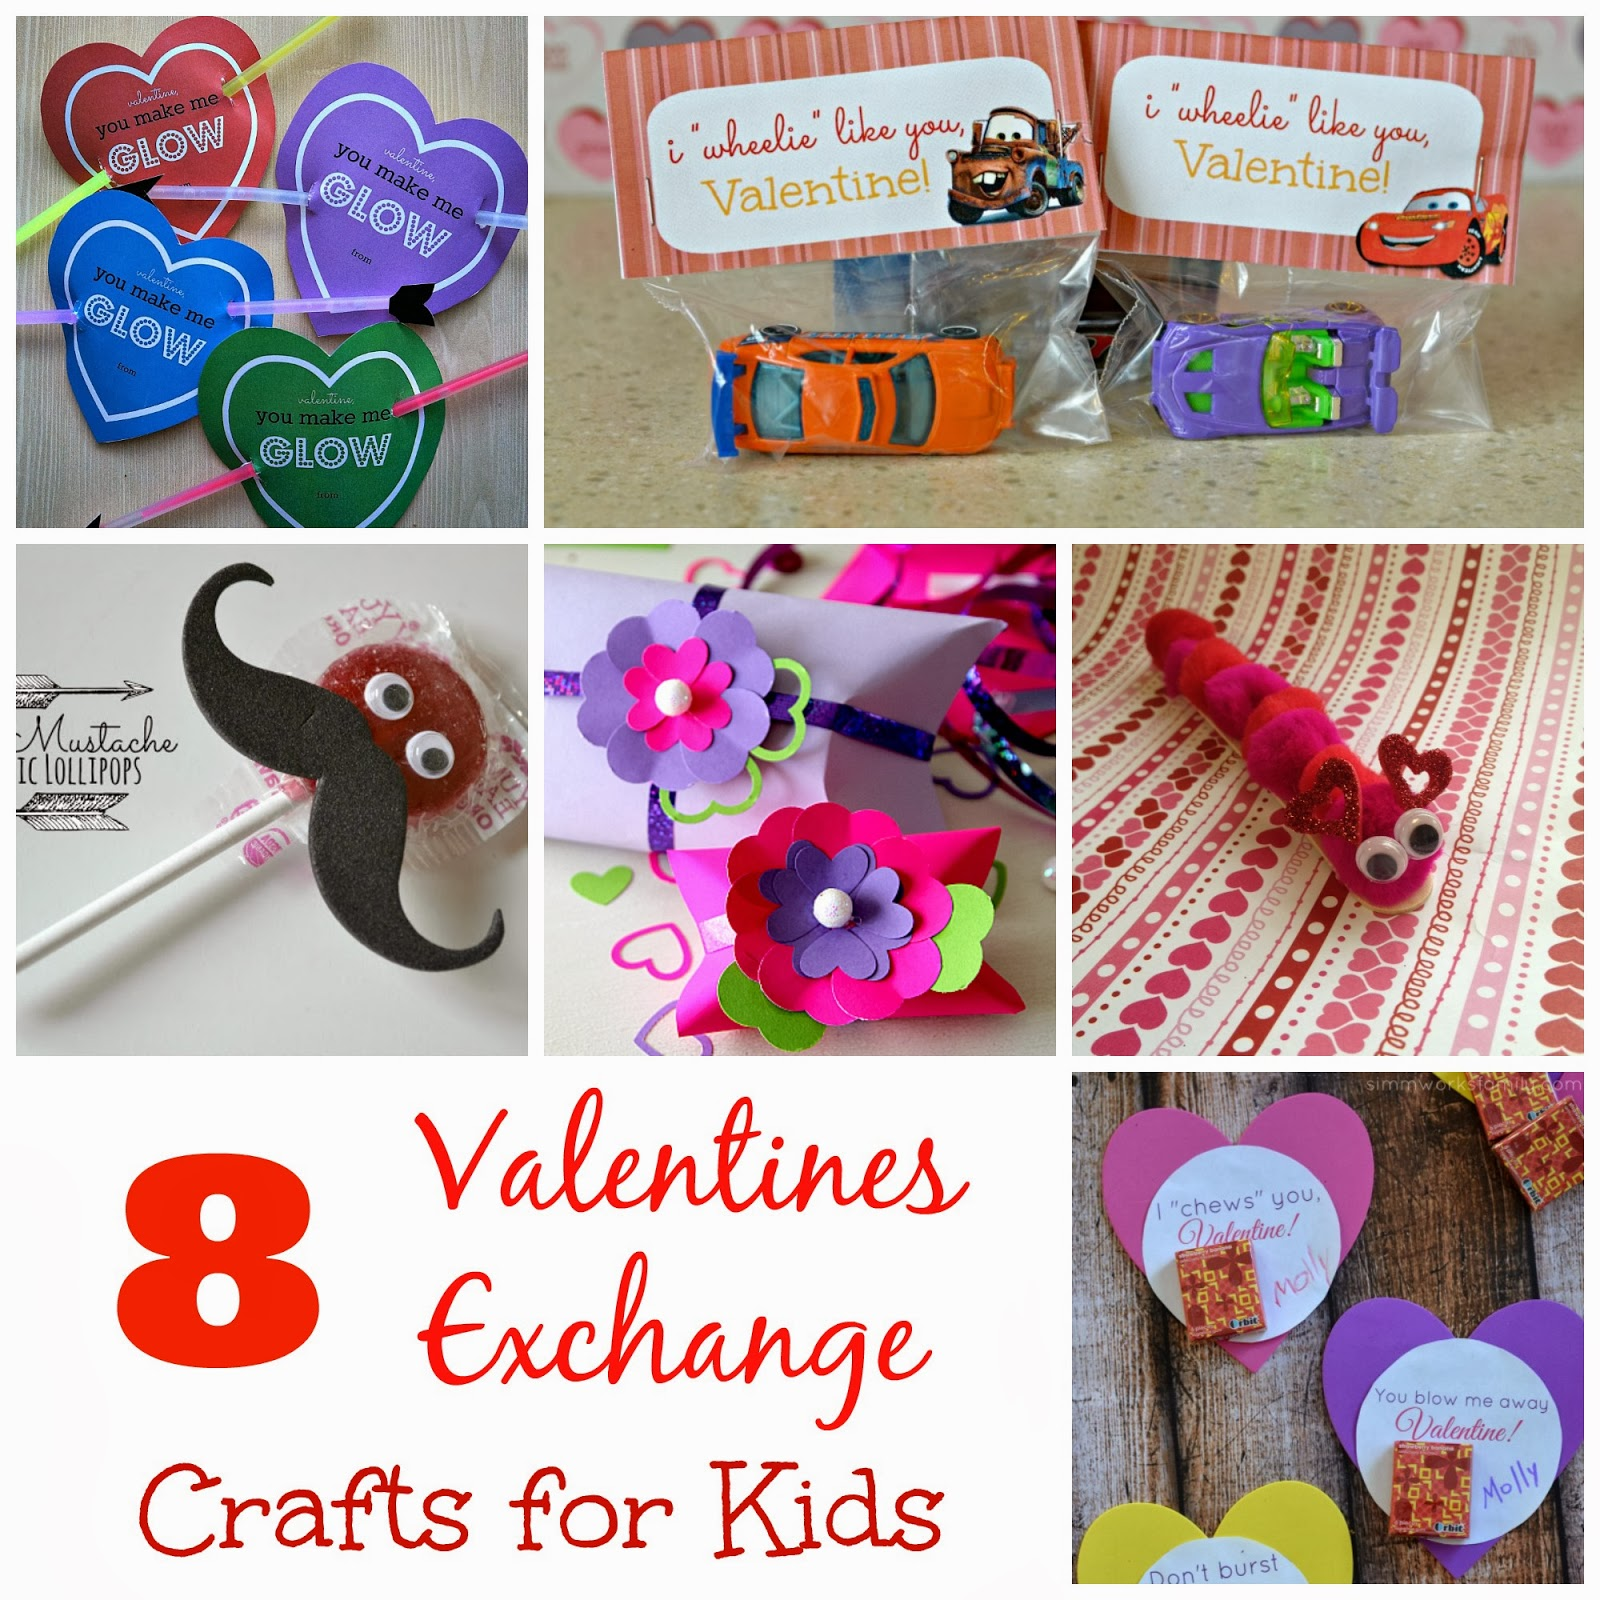 pinterest valentine craft ideas 8 valentines exchange crafts for outnumbered 3 to 1 5203